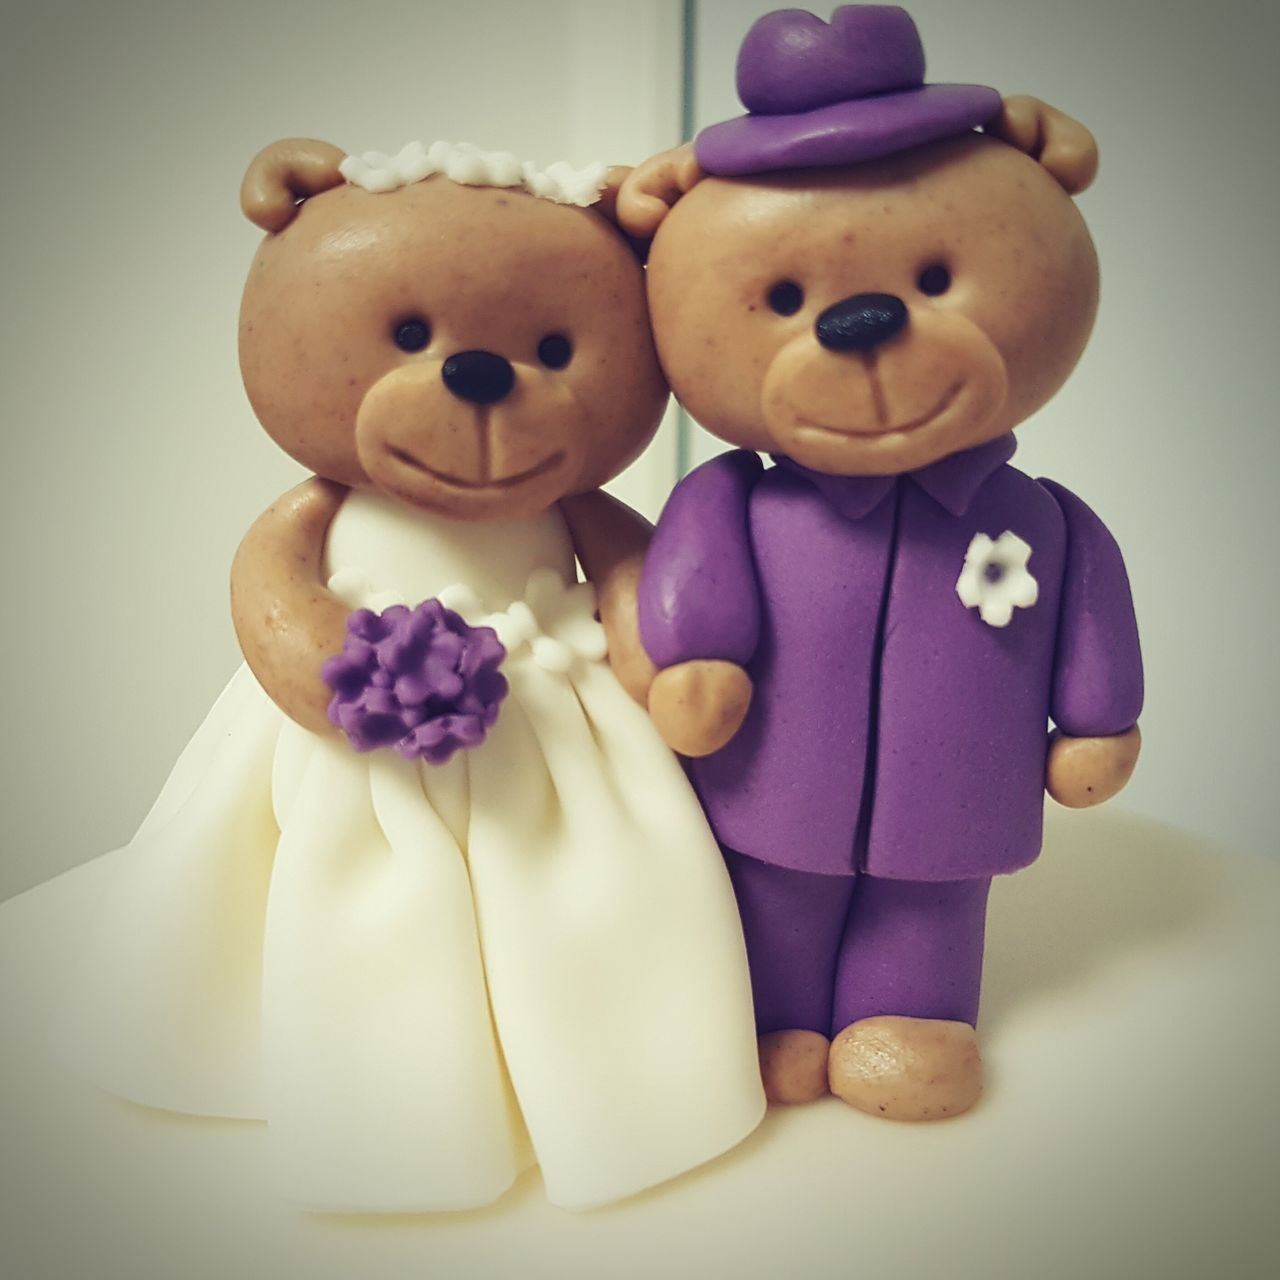 Bears Cake Decorating Family Portrait Love Justmarried💑 First Eyeem Photo